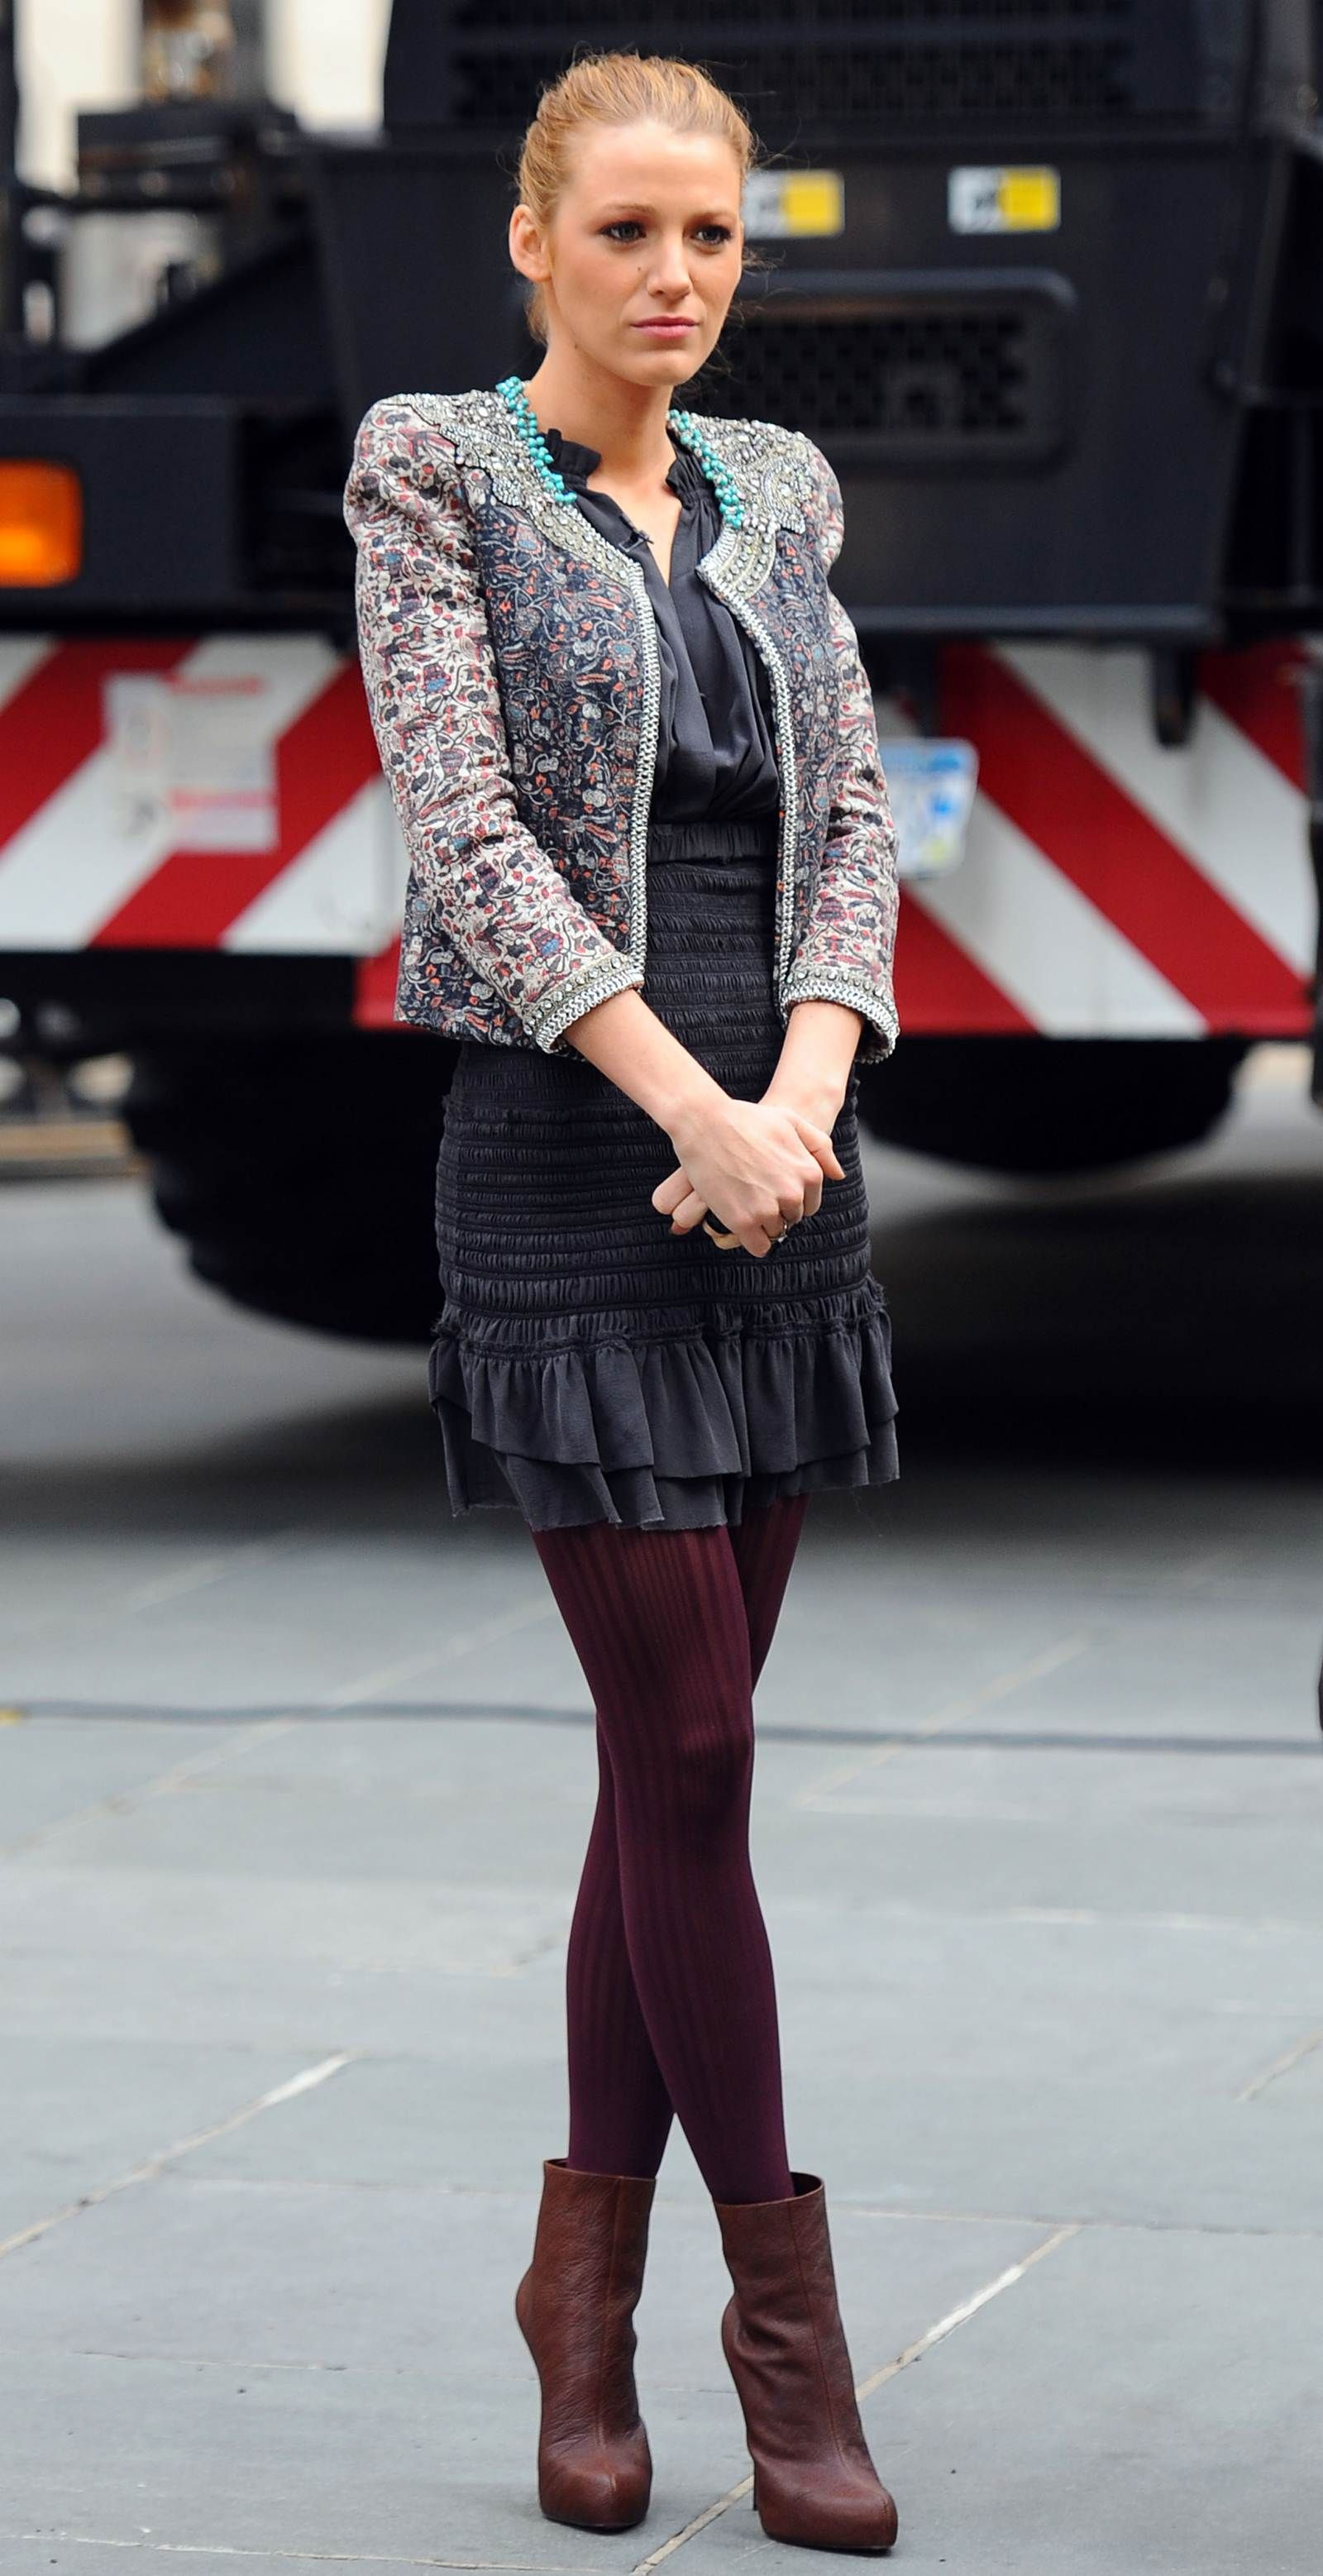 87902a4d0b Colored tights on Gossip Girl. Blake Lively Gossip Girl, Blake Lively  Outfits, Blake